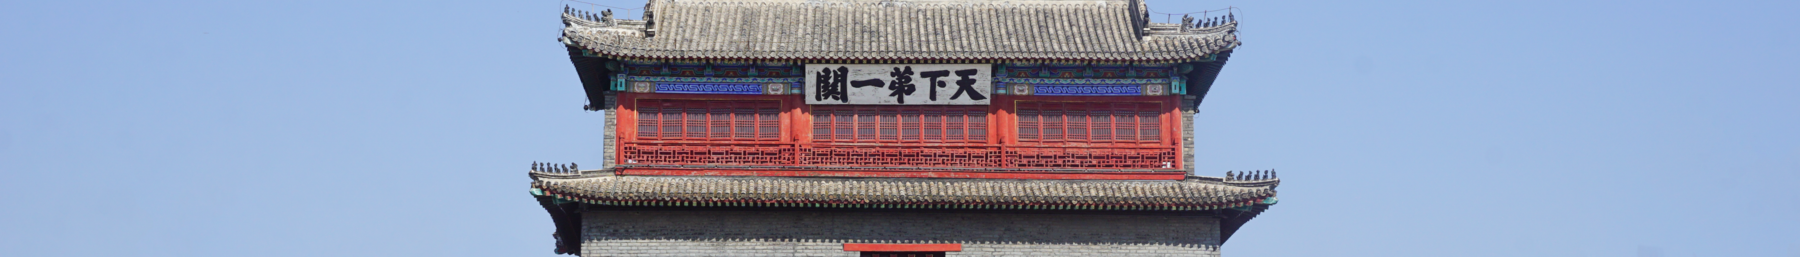 Qinhuangdao banner.png